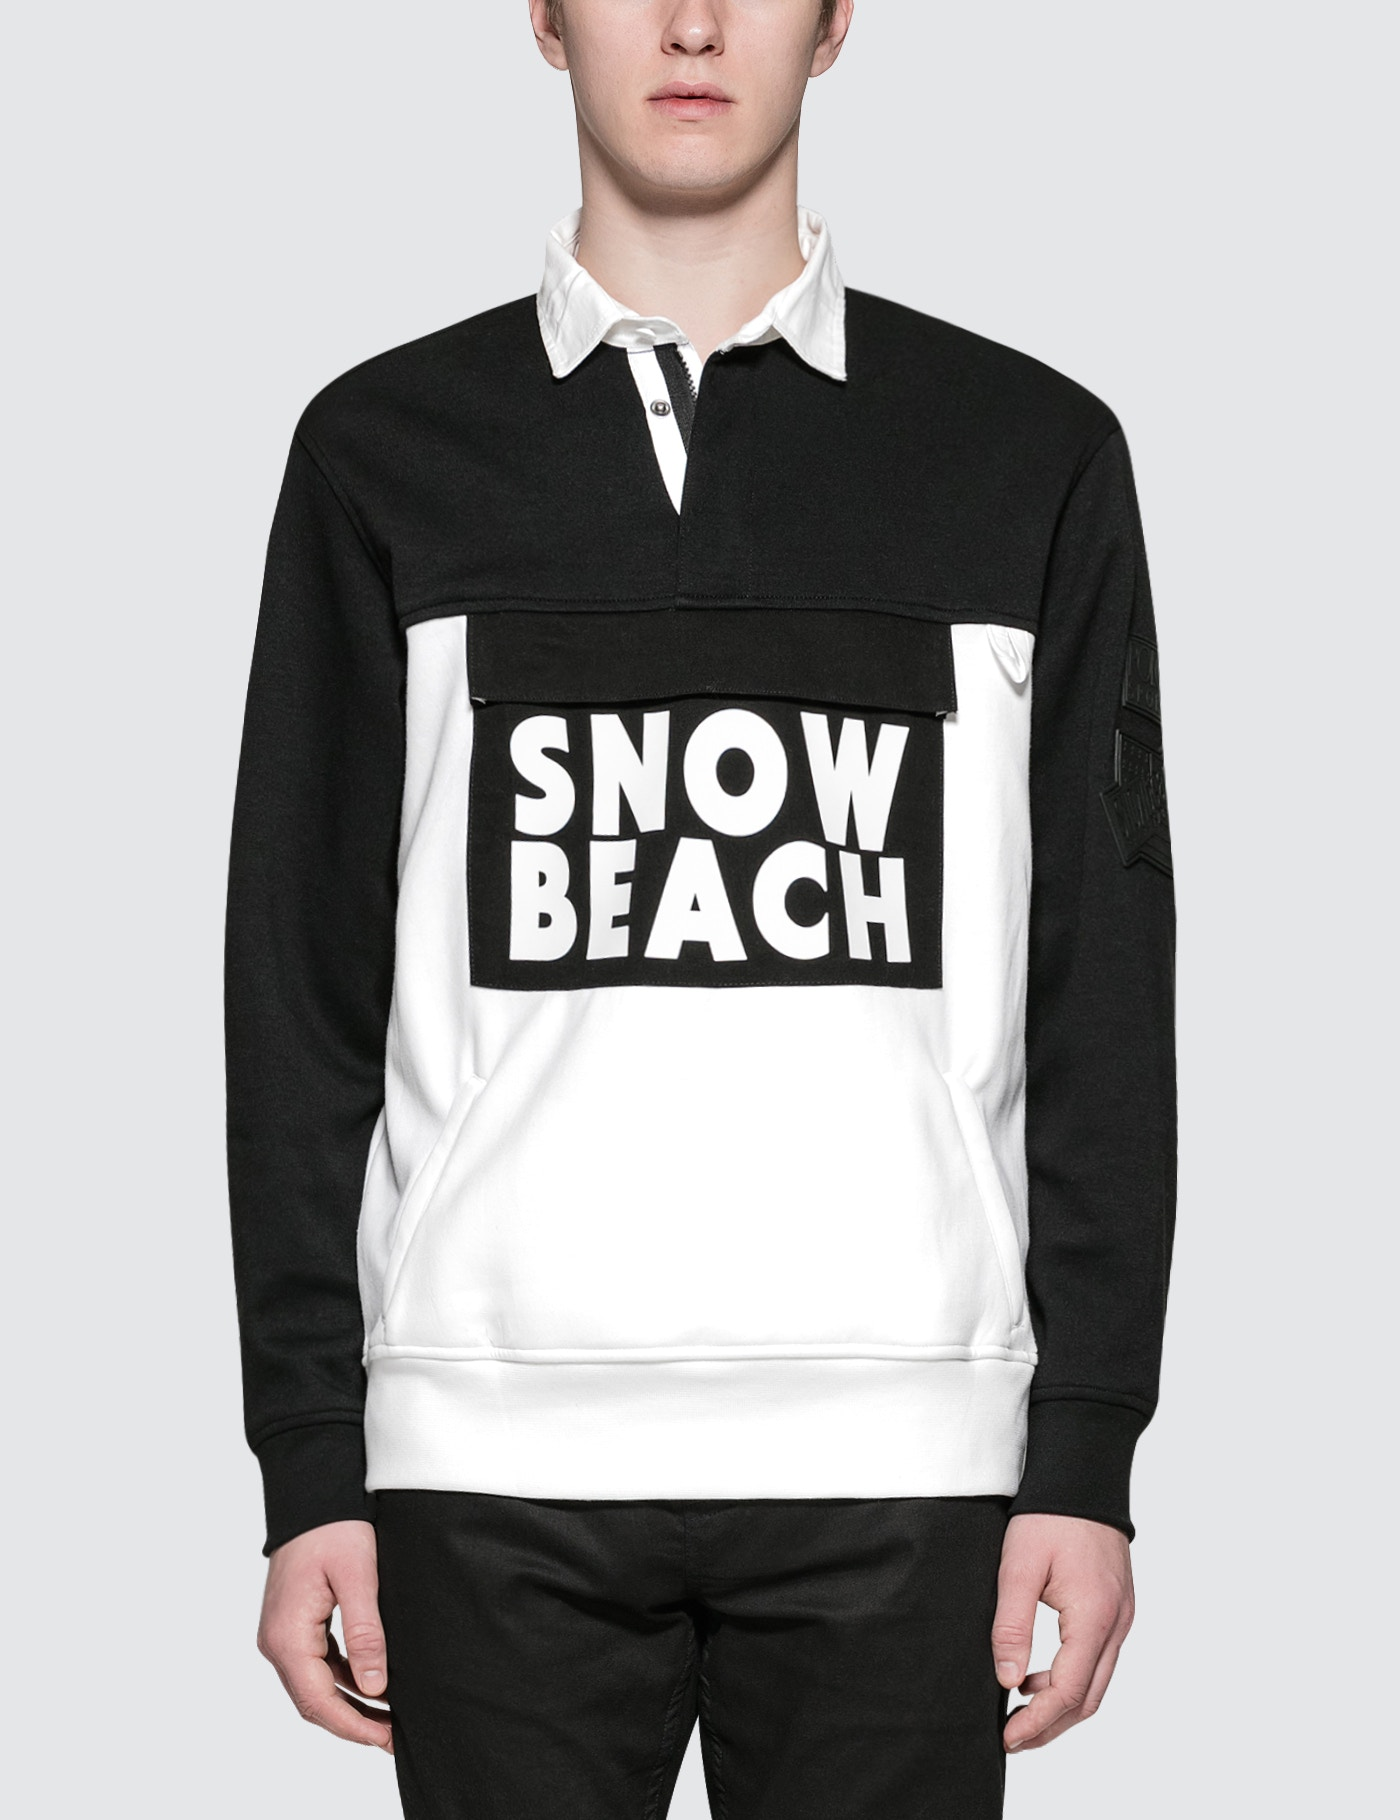 Double Ralph ShirtPolo The Lauren Tech Beach Knit Snow Rugby pqGMLUzSjV